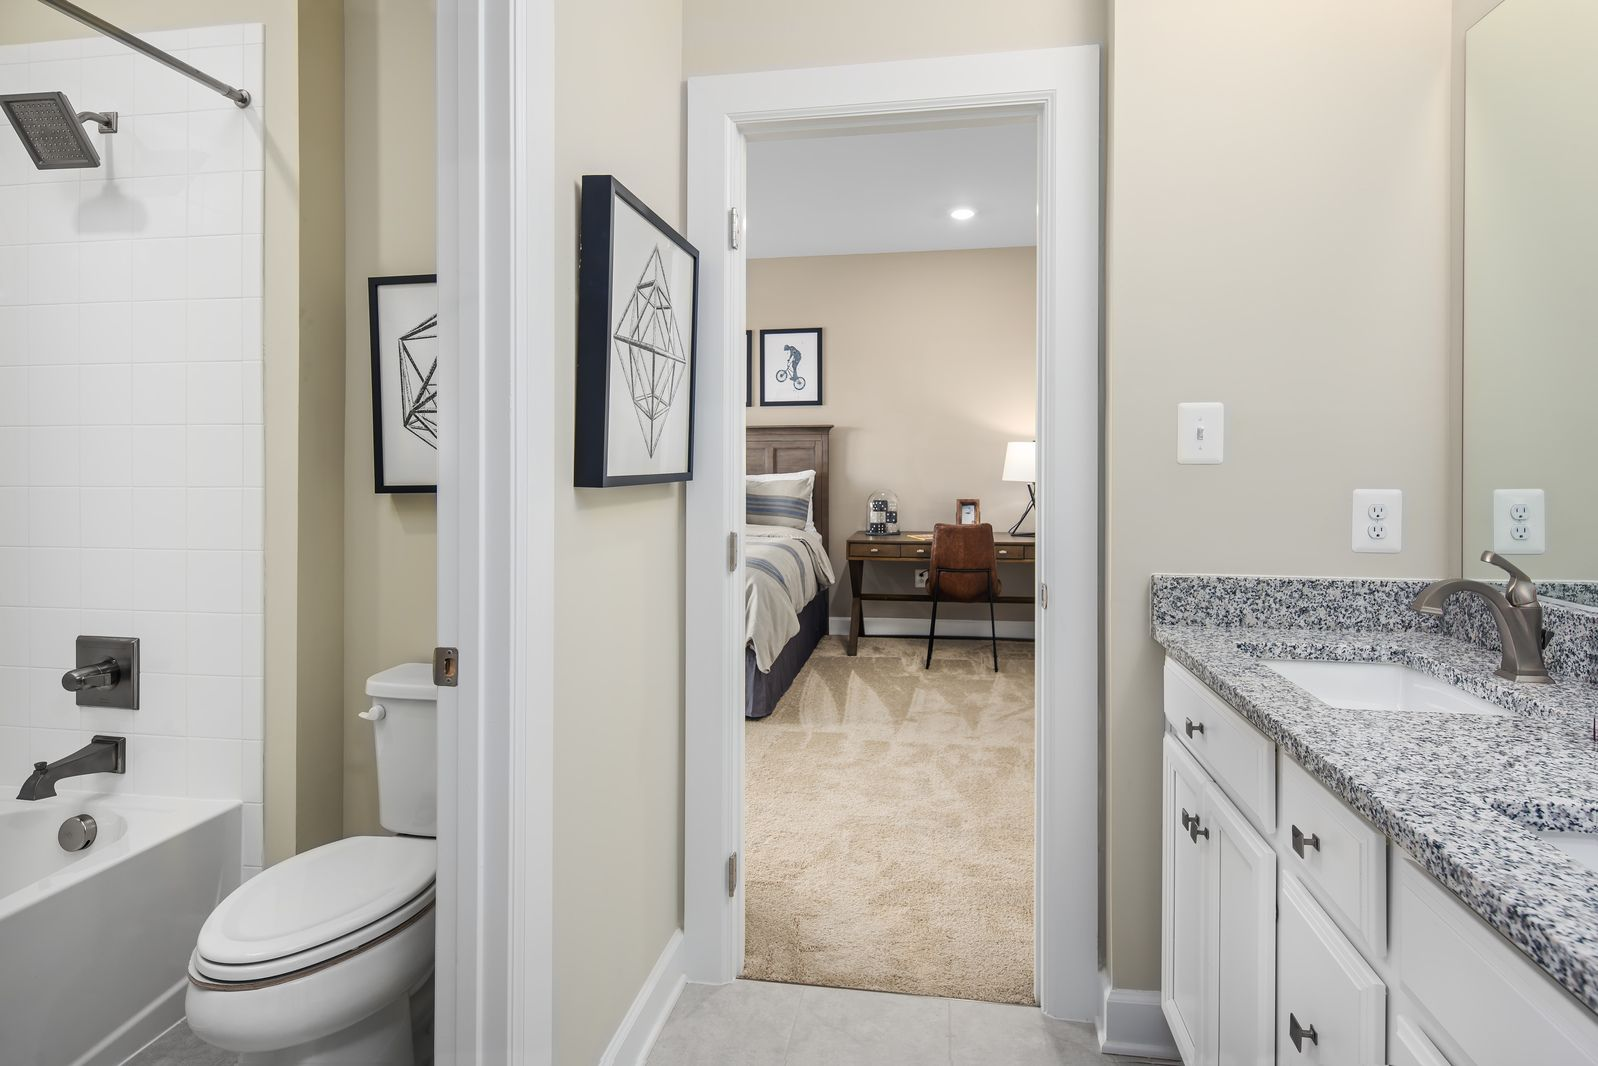 Bathroom featured in the Longwood By NVHomes in Washington, MD